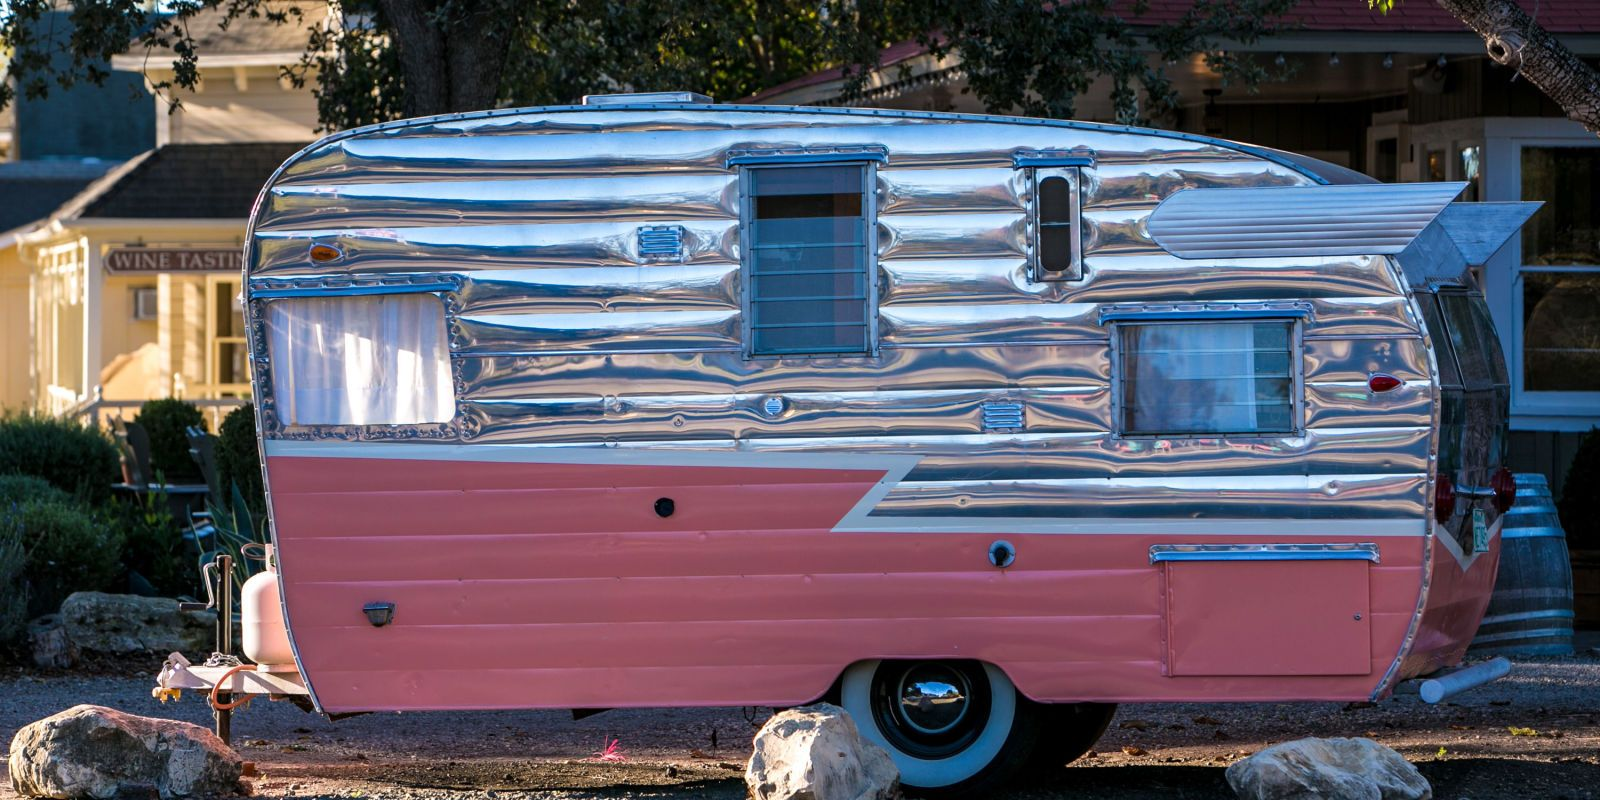 9 Of The Coolest Travel Trailers On The Road Vintage Travel